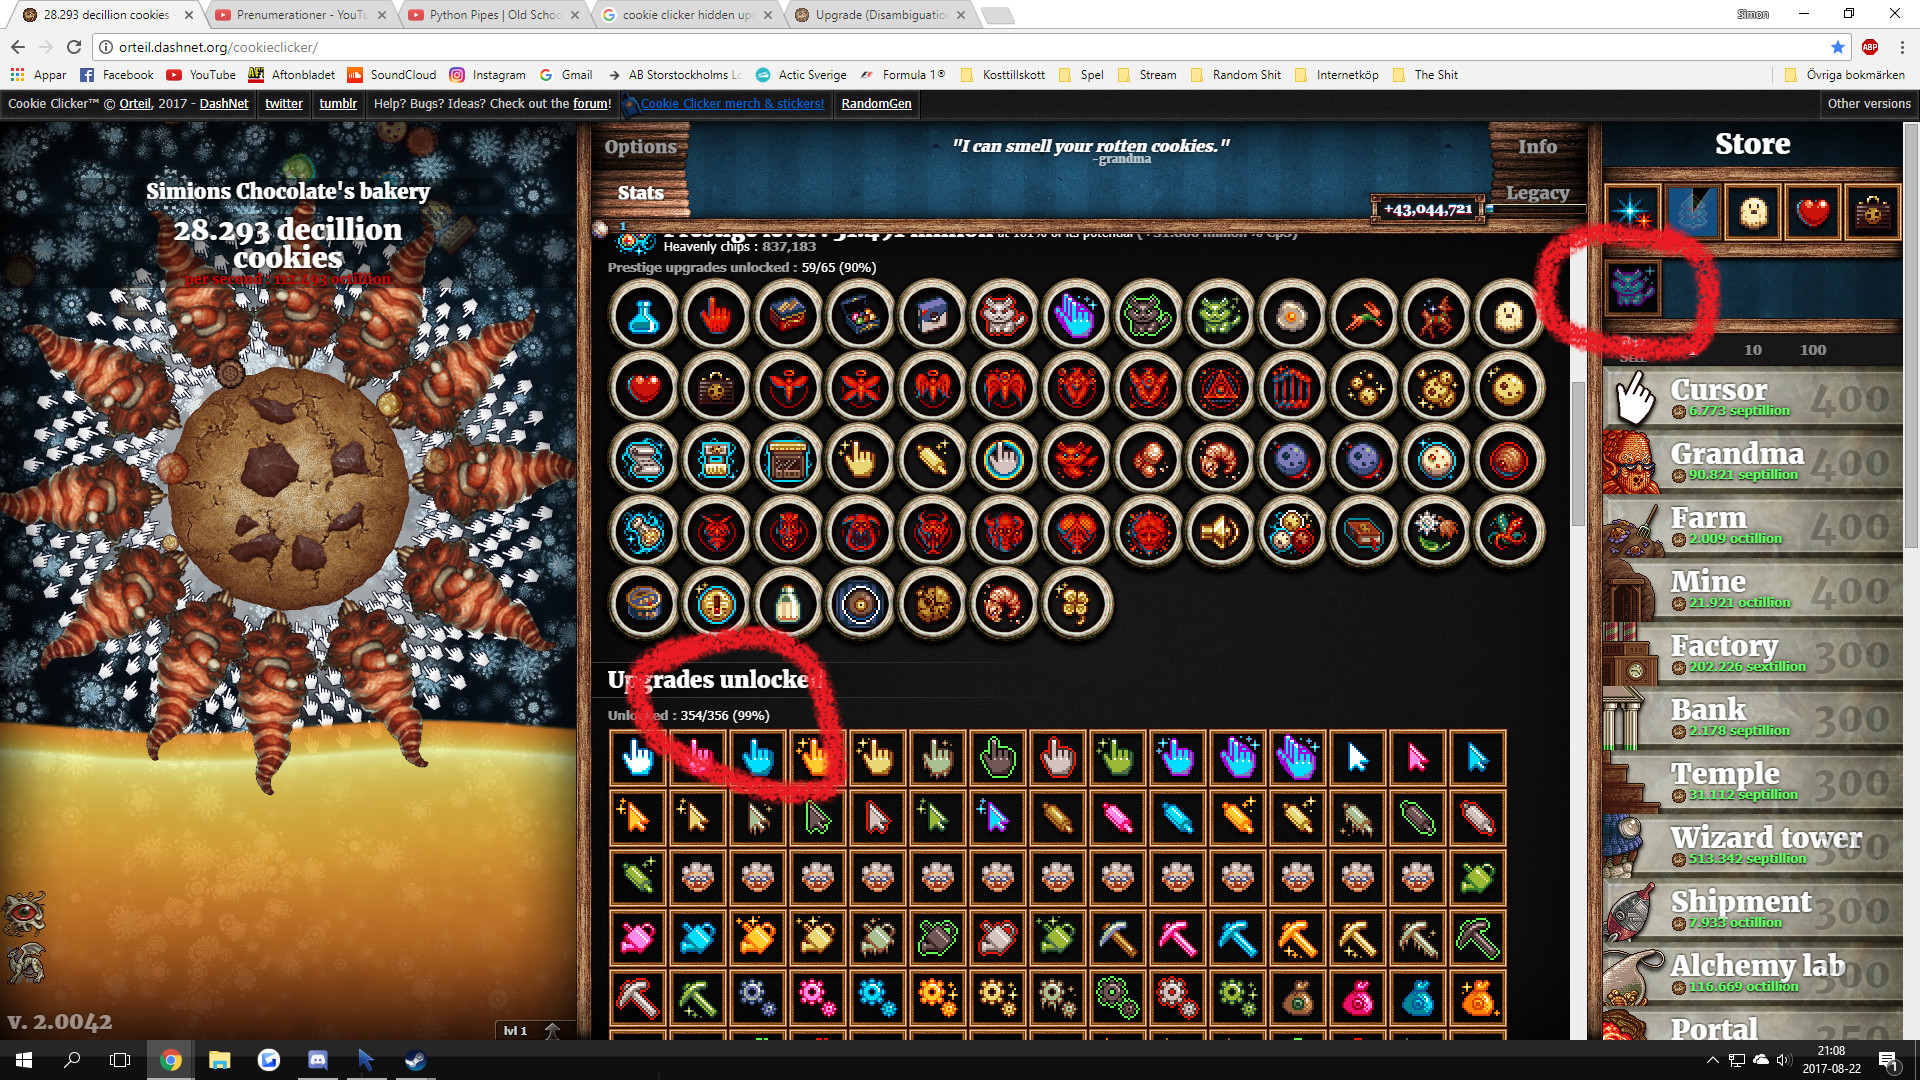 Cookie Clicker Halloween Cookies  Zzlim u Zzlim Reddit